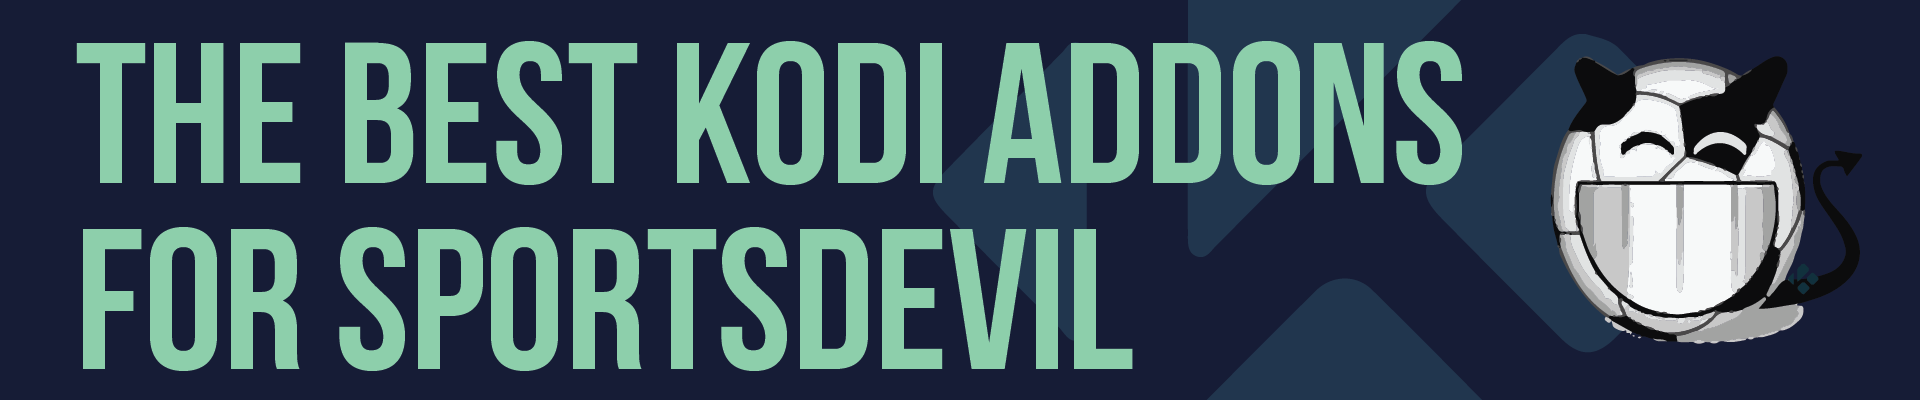 The Best Kodi Addons – SportsDevil | BestVPN org